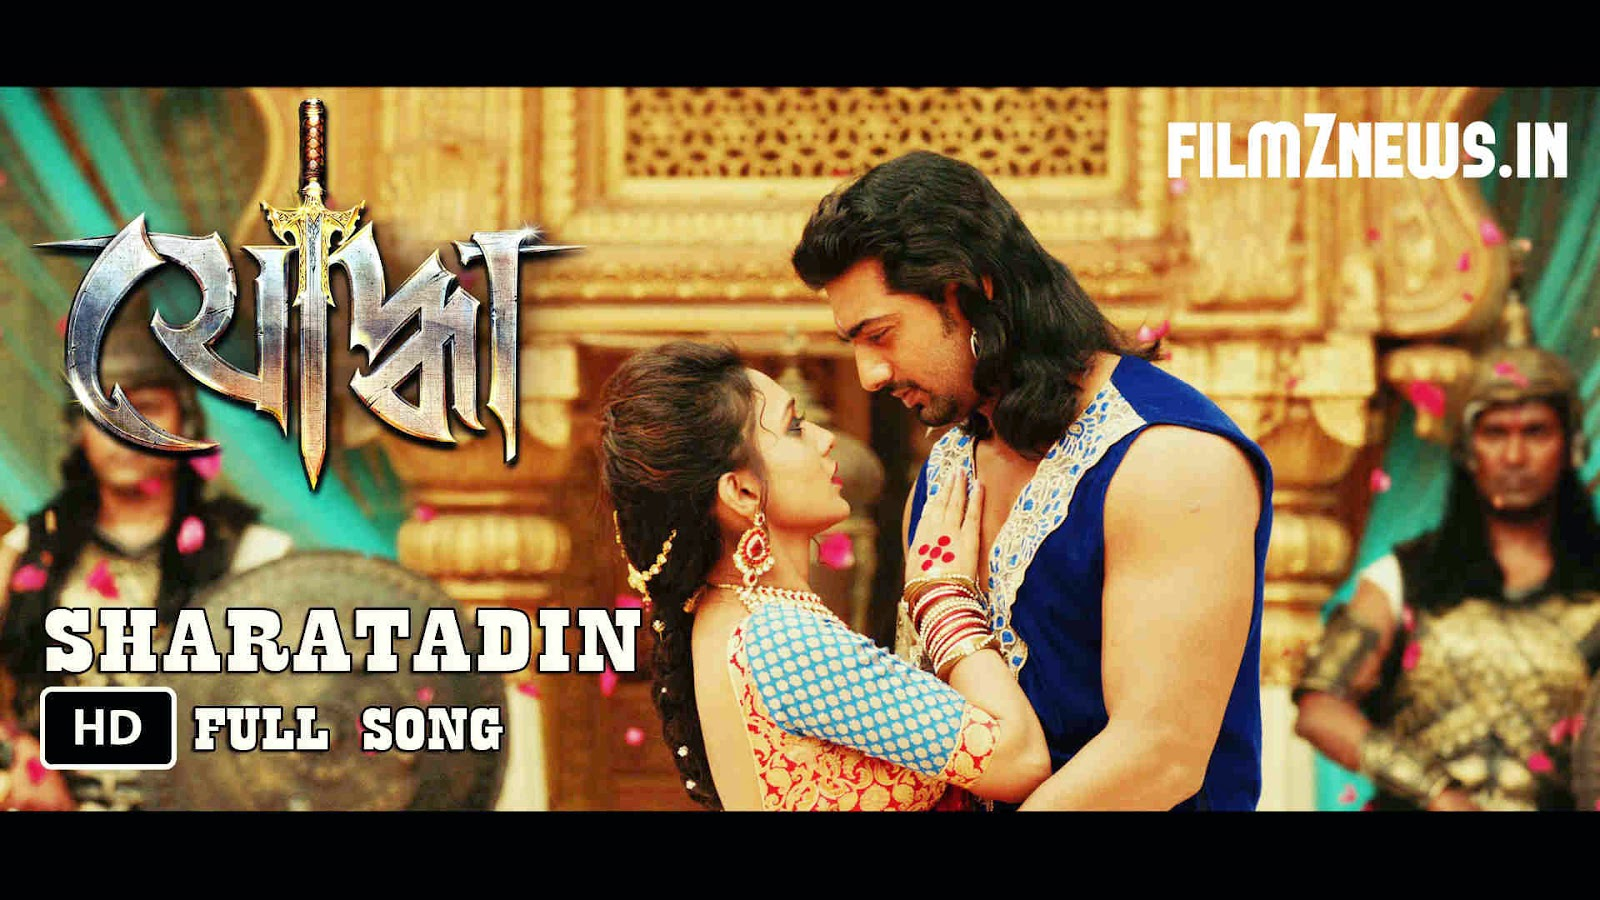 Saratadin Video Song From Yoddha (2014) Bengali Movie